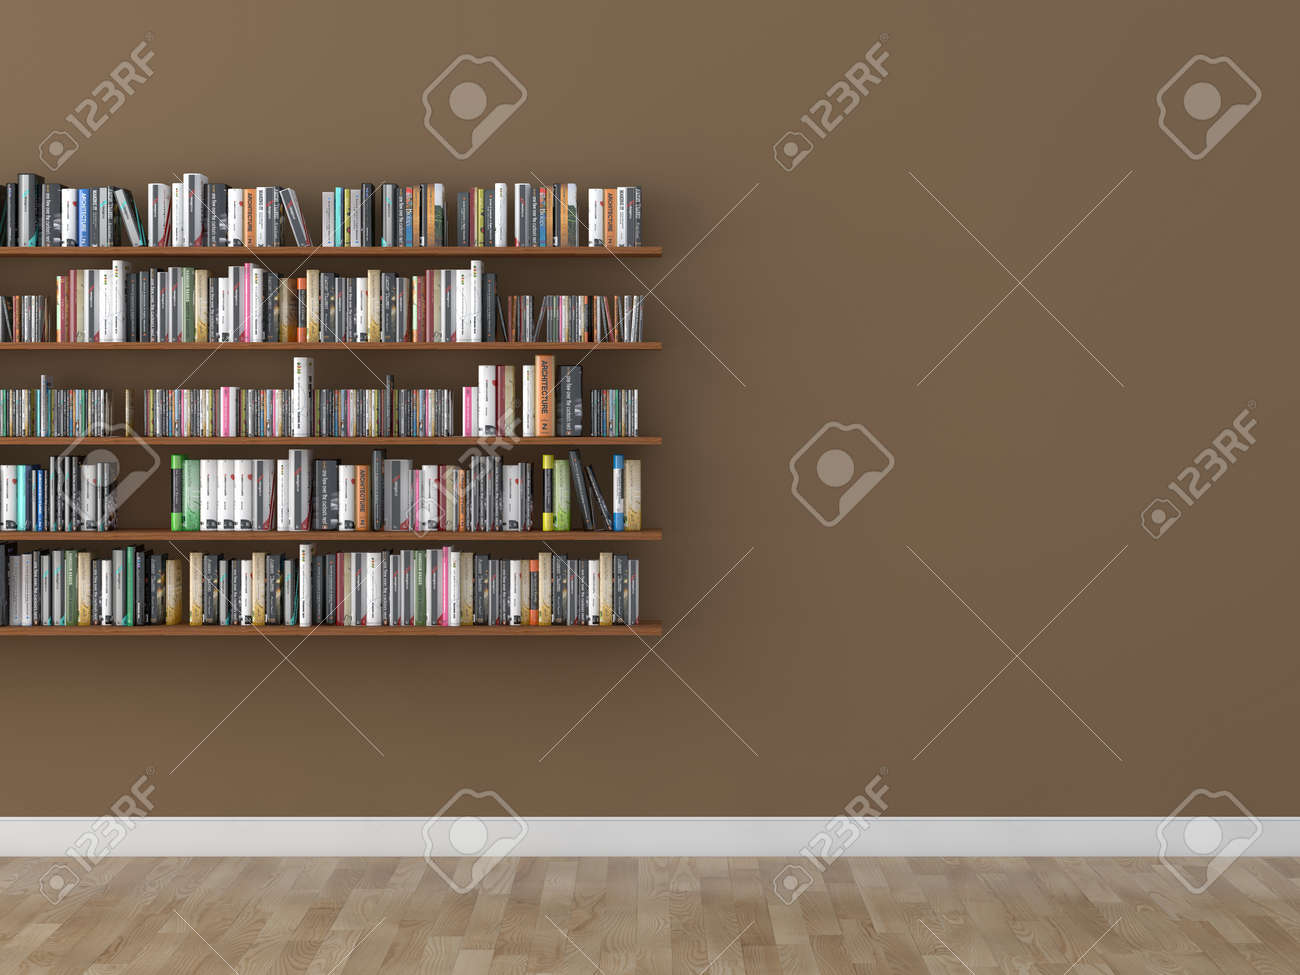 interior bookshelf room library Stock Photo